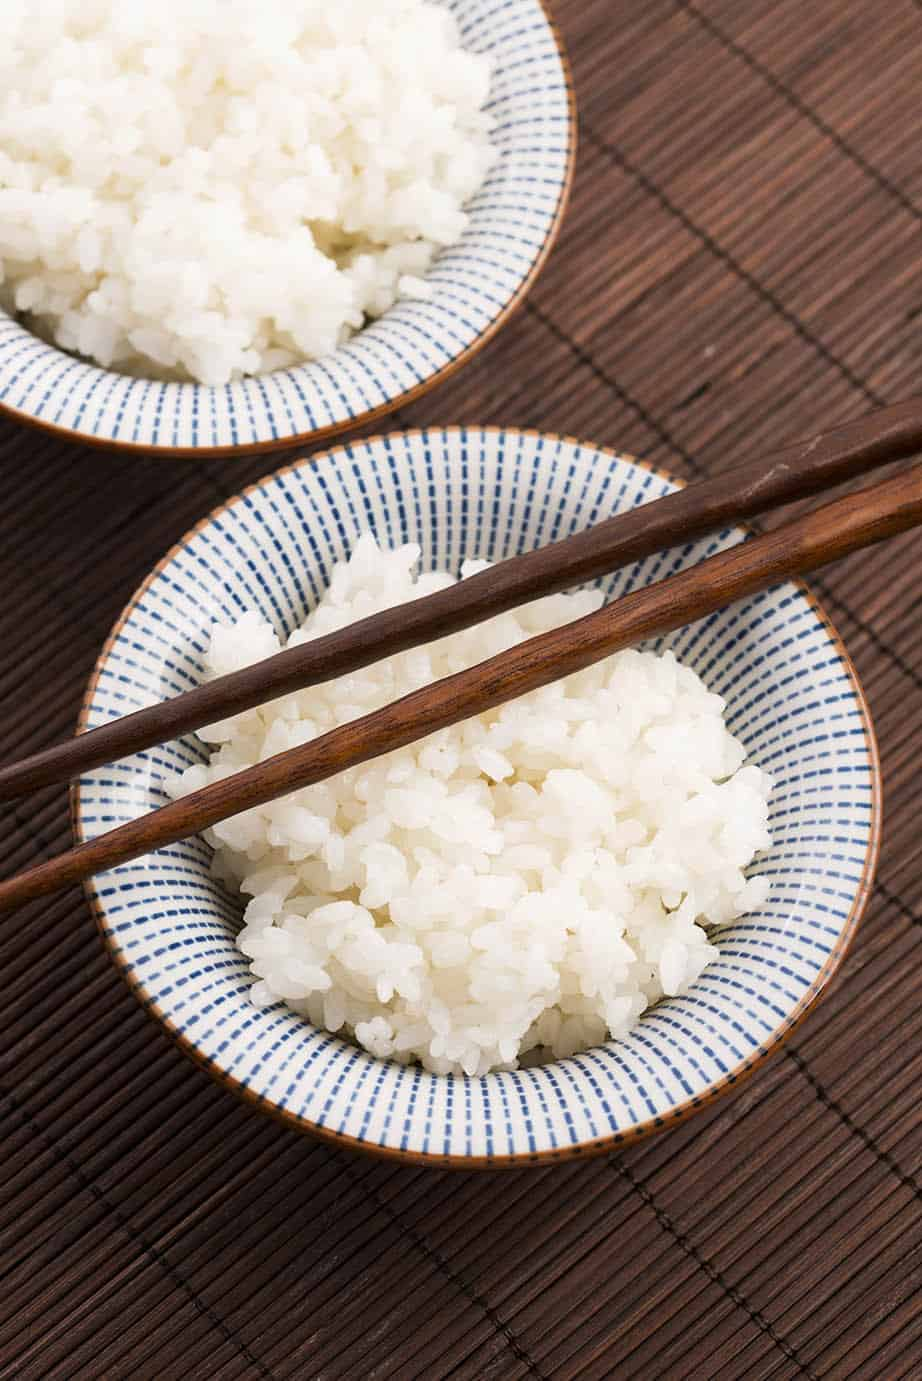 Basic Sushi Rice Thermomix Recipe